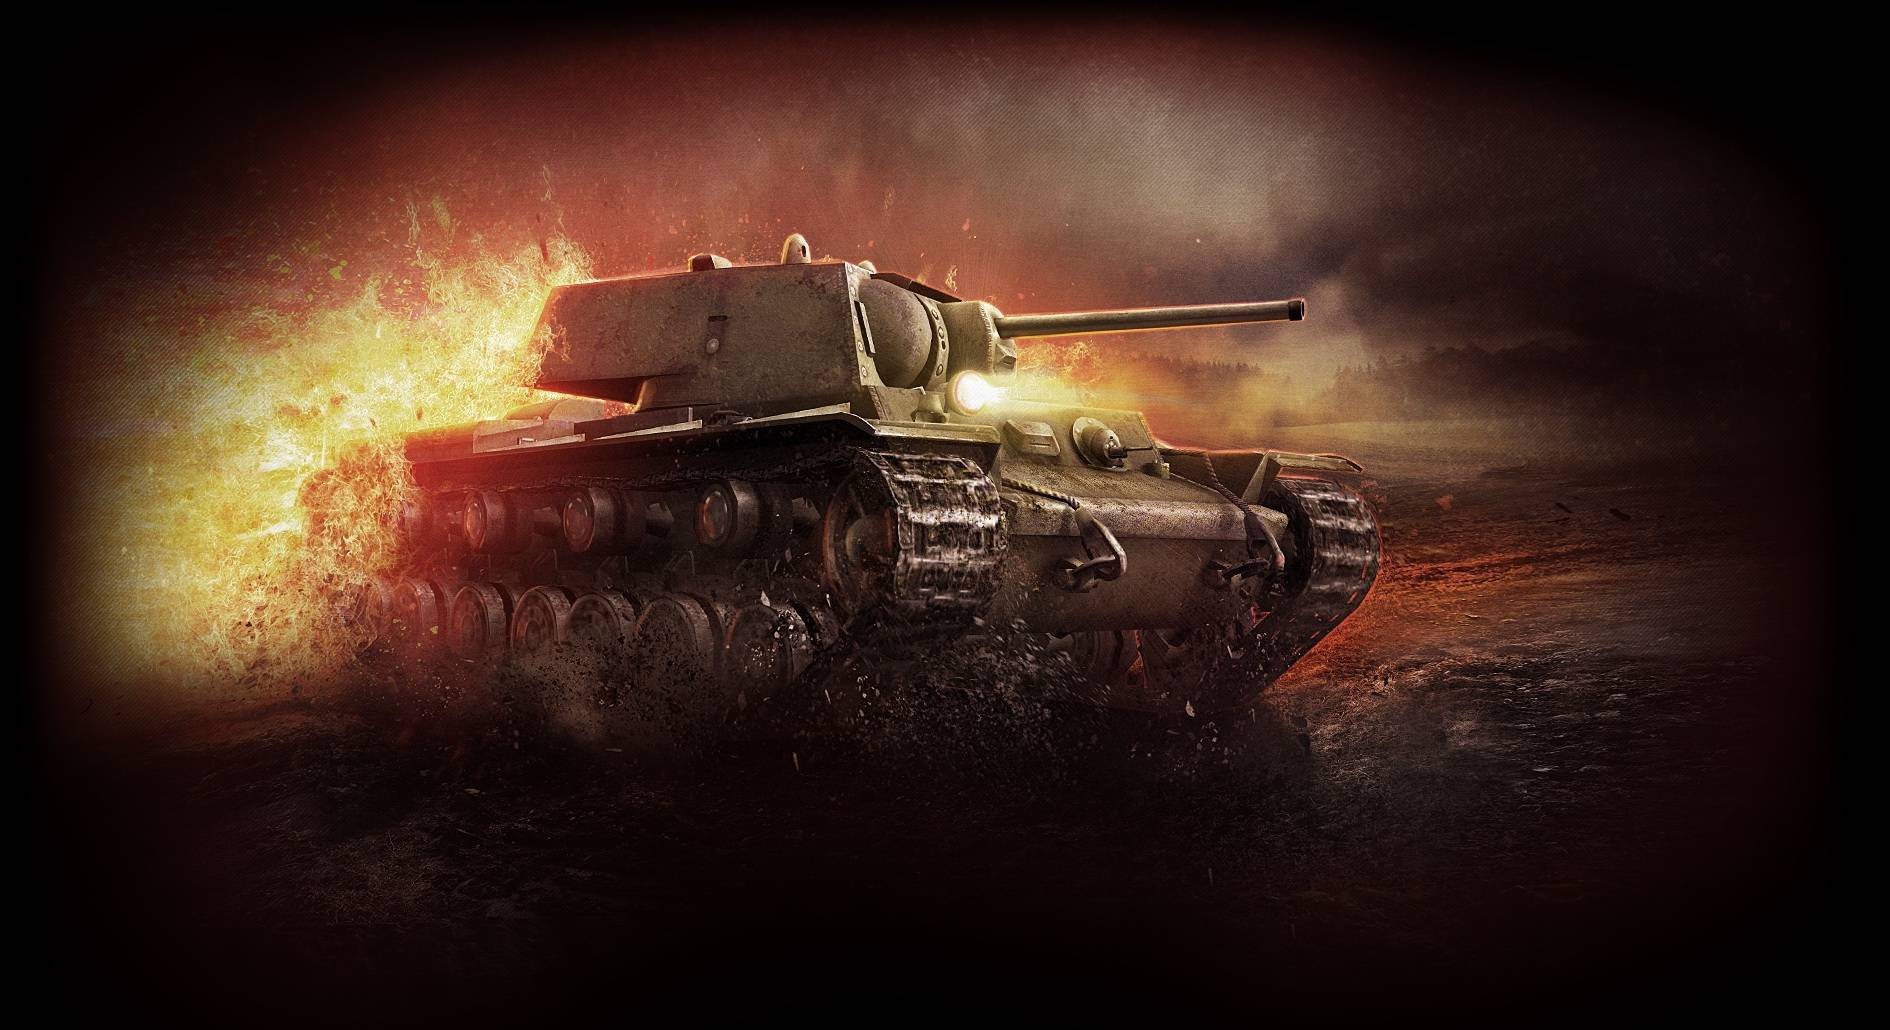 World of tanks сложно играть blitz онлайн бесплатно